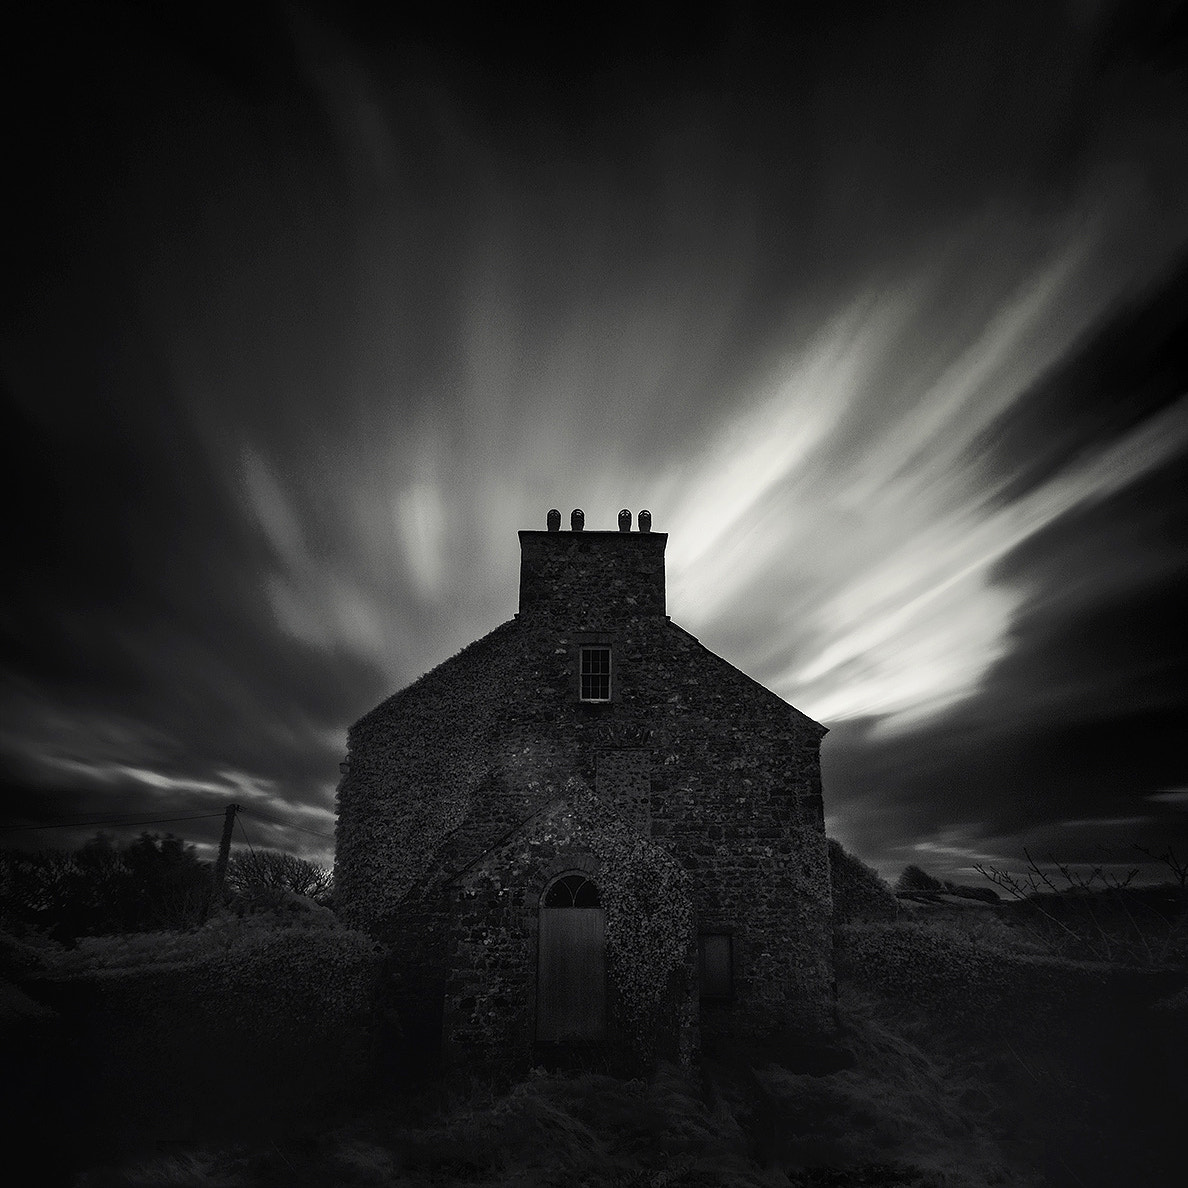 Photograph abandoned farmhouse by Andy Lee on 500px